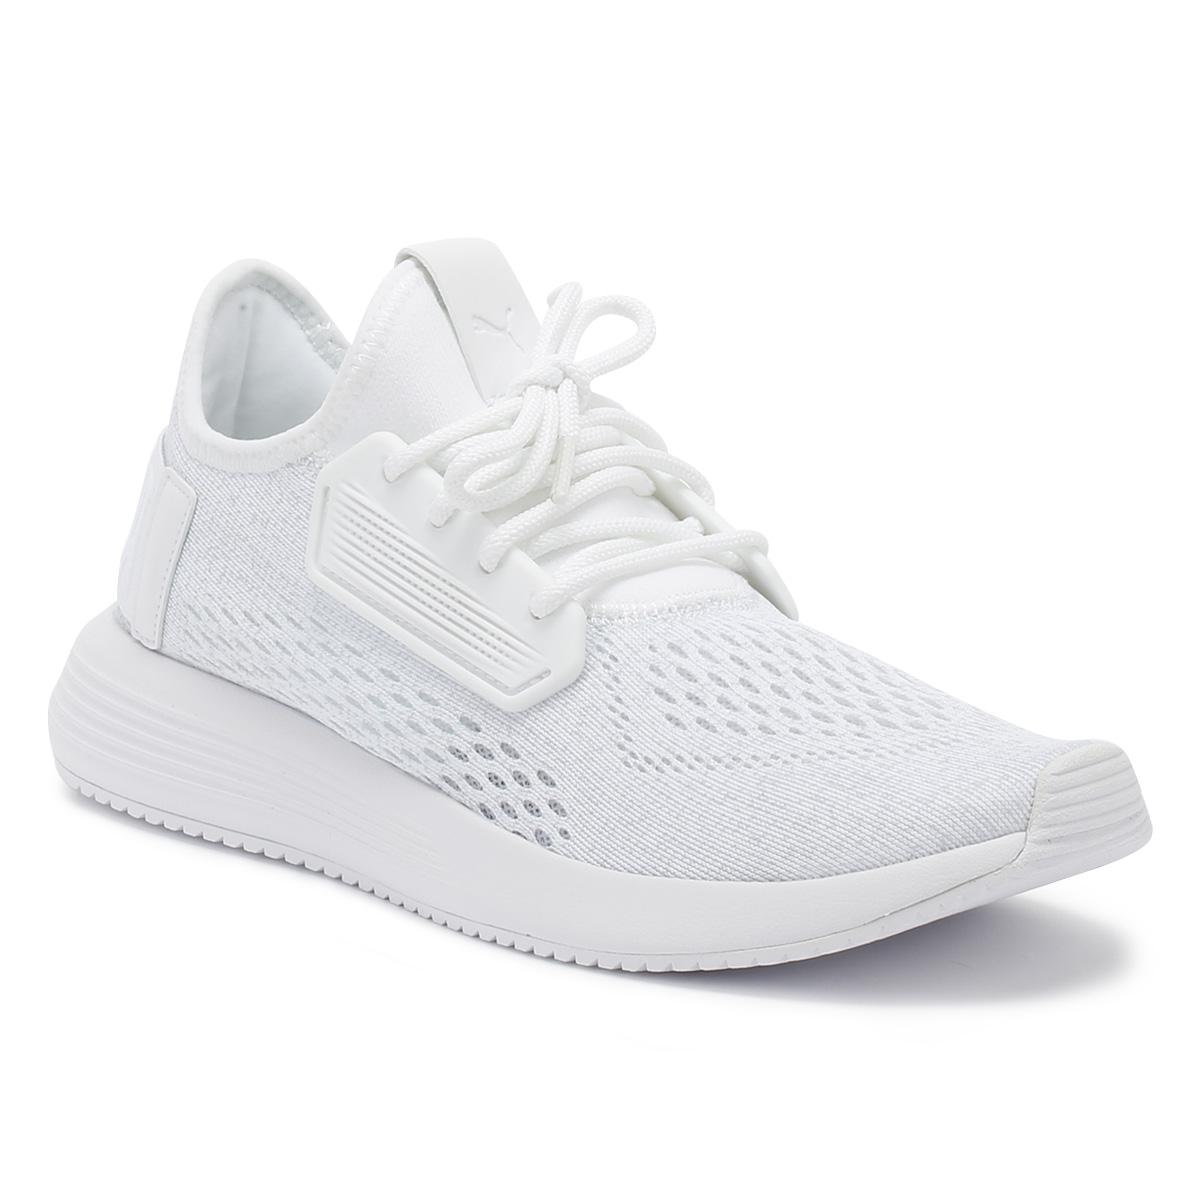 eb27b54d57190d PUMA Mens White Uprise Mesh Trainers in White for Men - Save 37% - Lyst